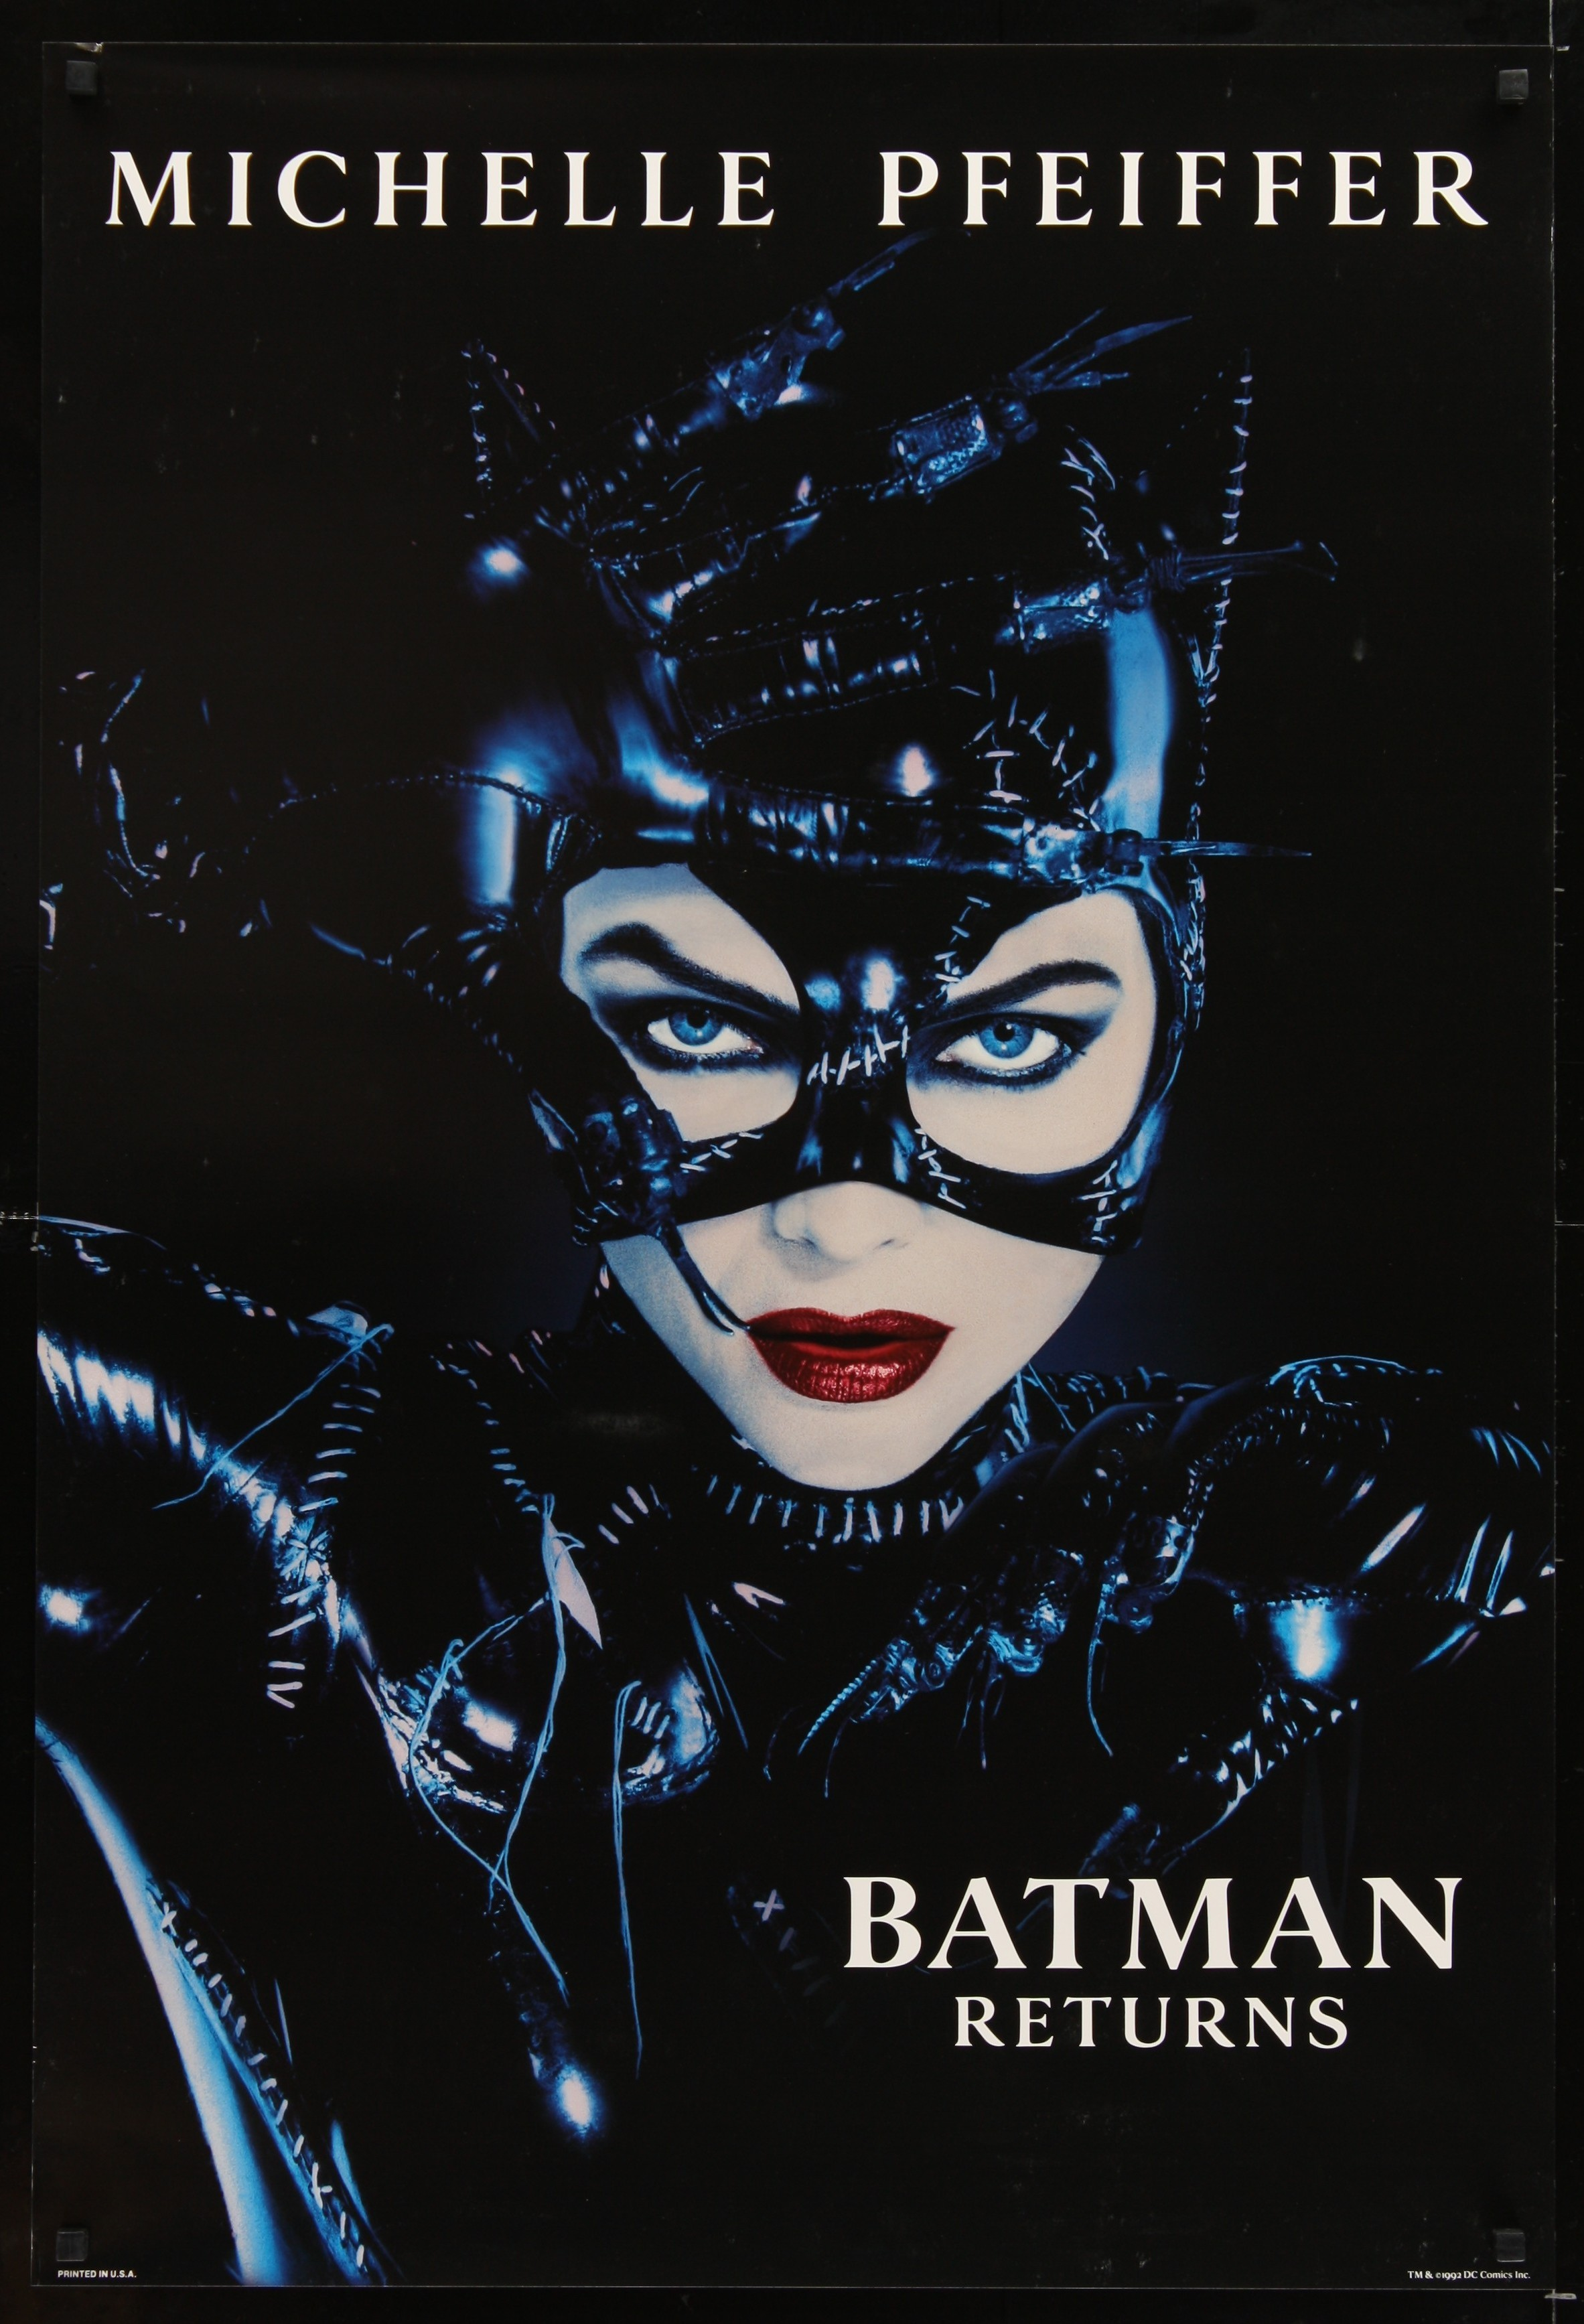 stylistic techniques in batman returns film studies essay Diversity in disney films: critical essays on race, ethnicity, gender, sexuality and disability - ebook written by johnson cheu read this book using google play books app on your pc, android, ios devices.